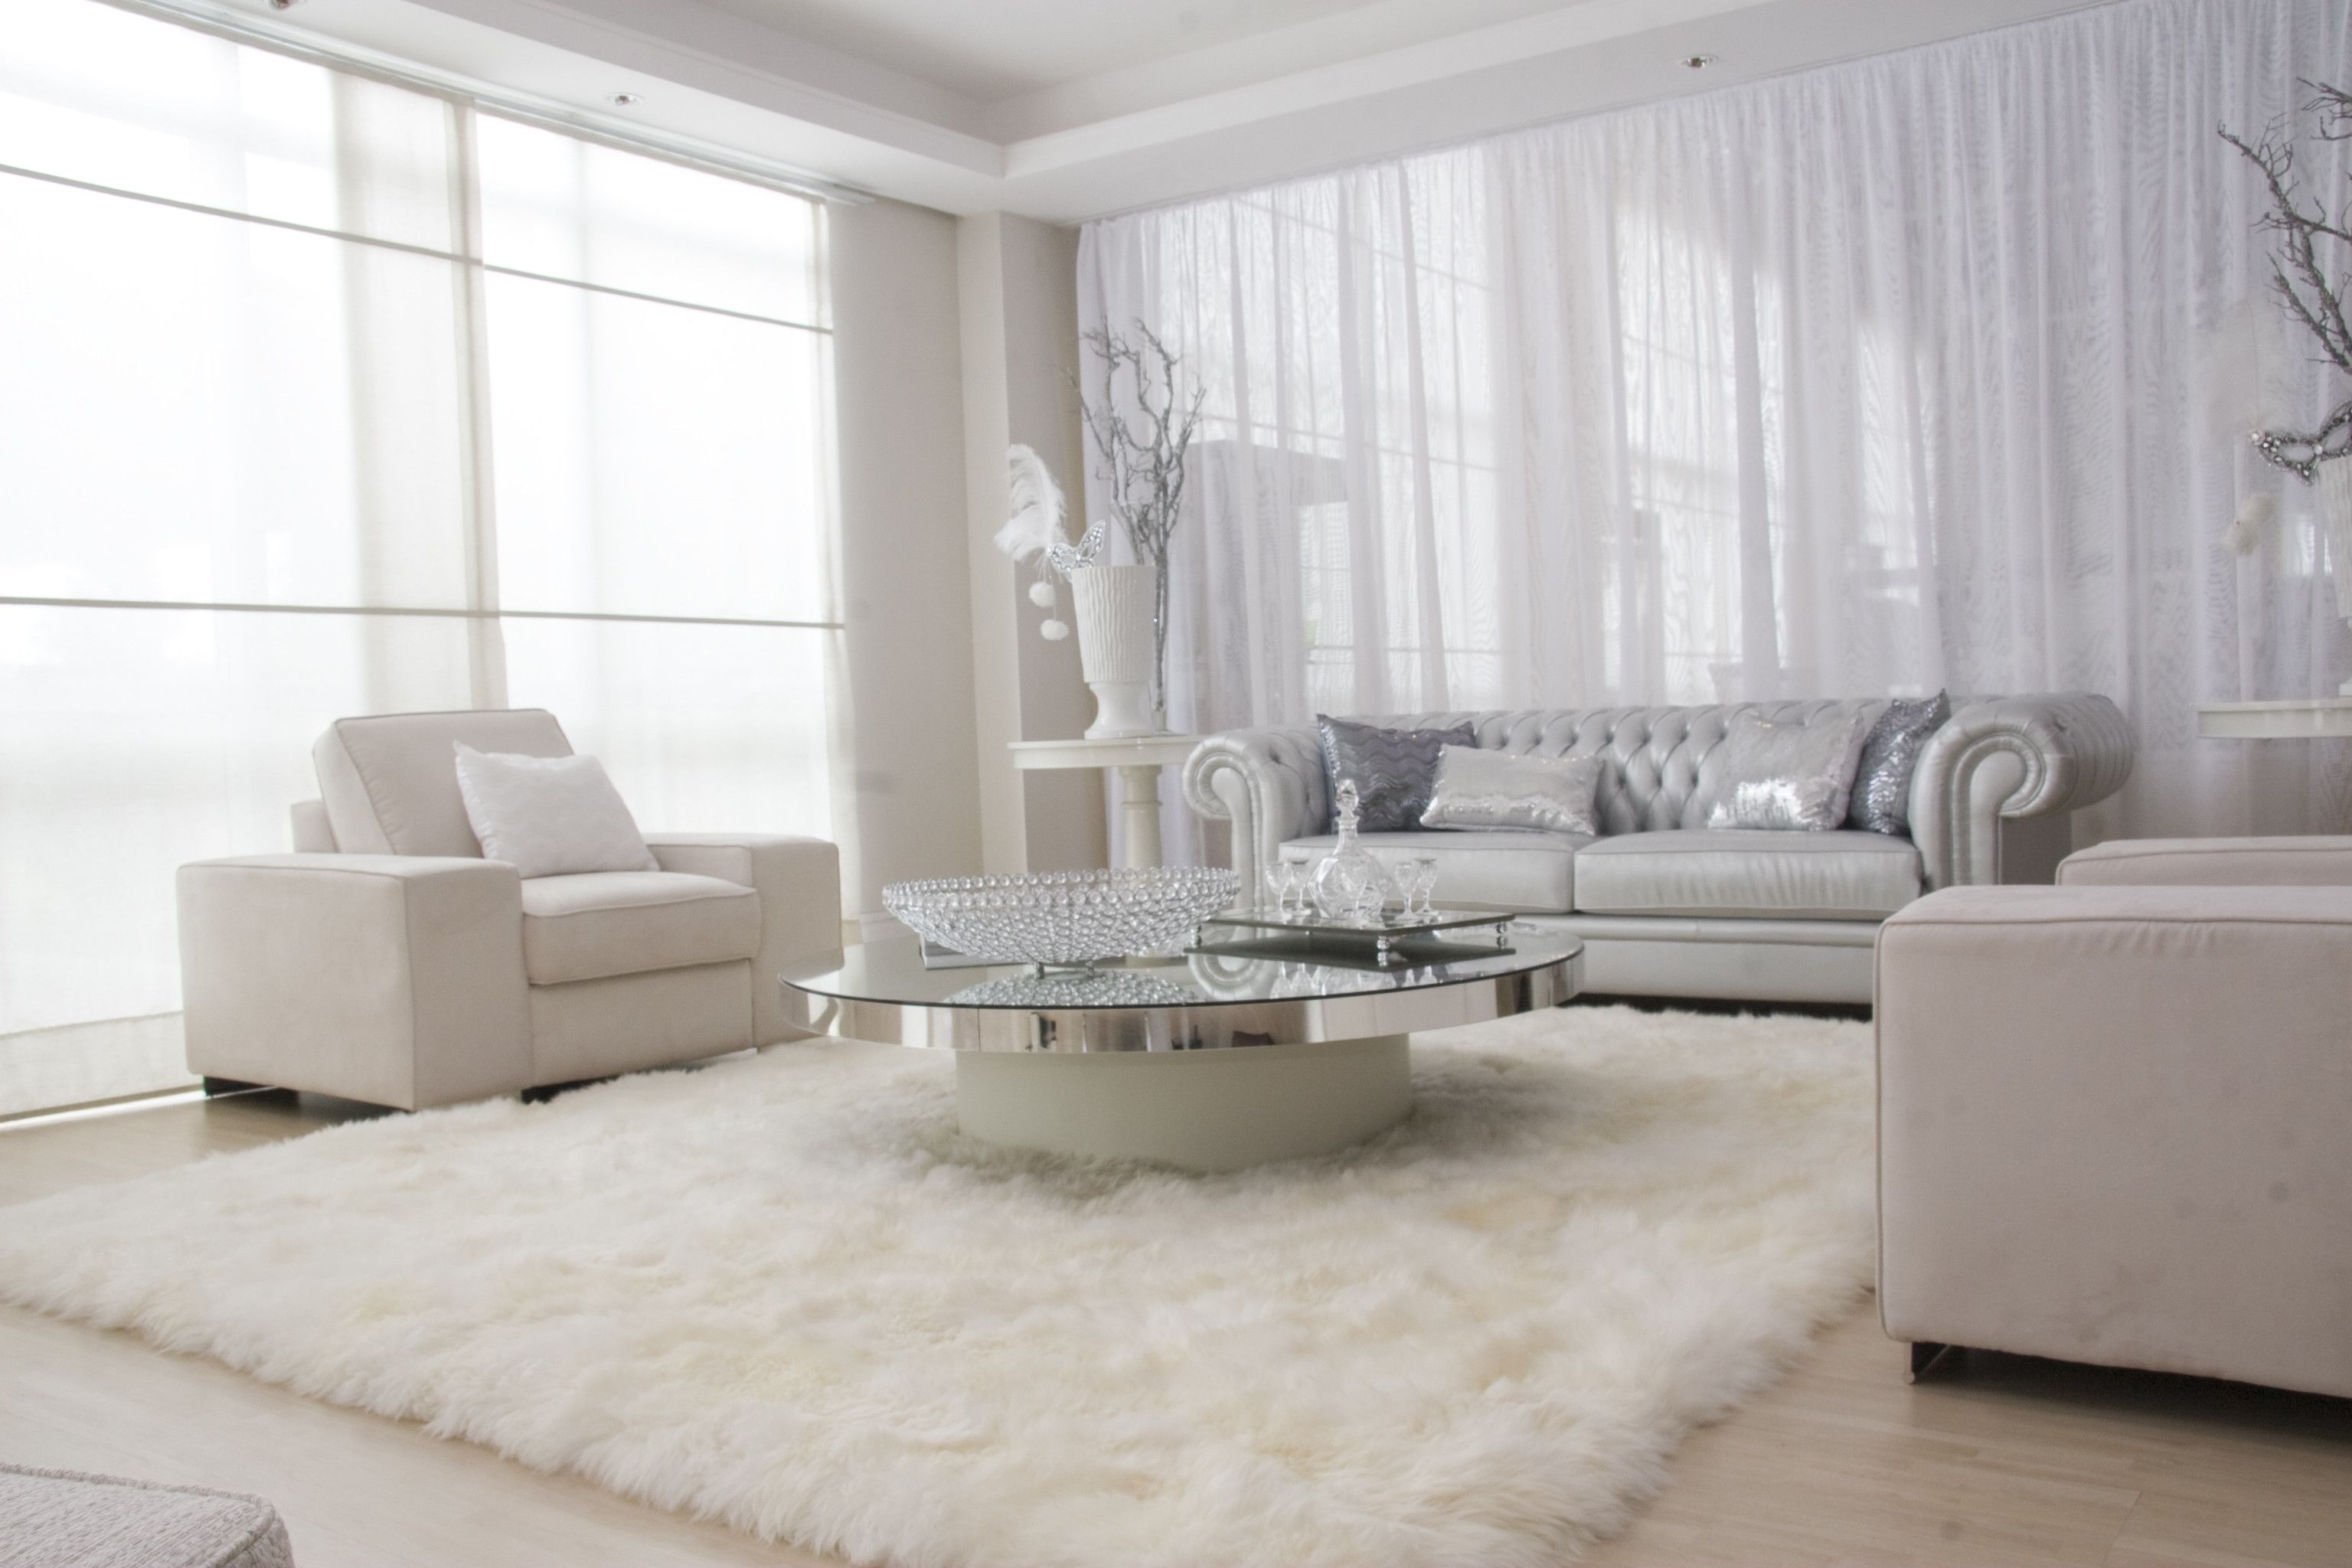 White Room Luxury Living Room Architecture Awsome Wallpapers Hd Wallpaper Download For Ipad Modern White Living Room Rugs In Living Room Luxury Living Room